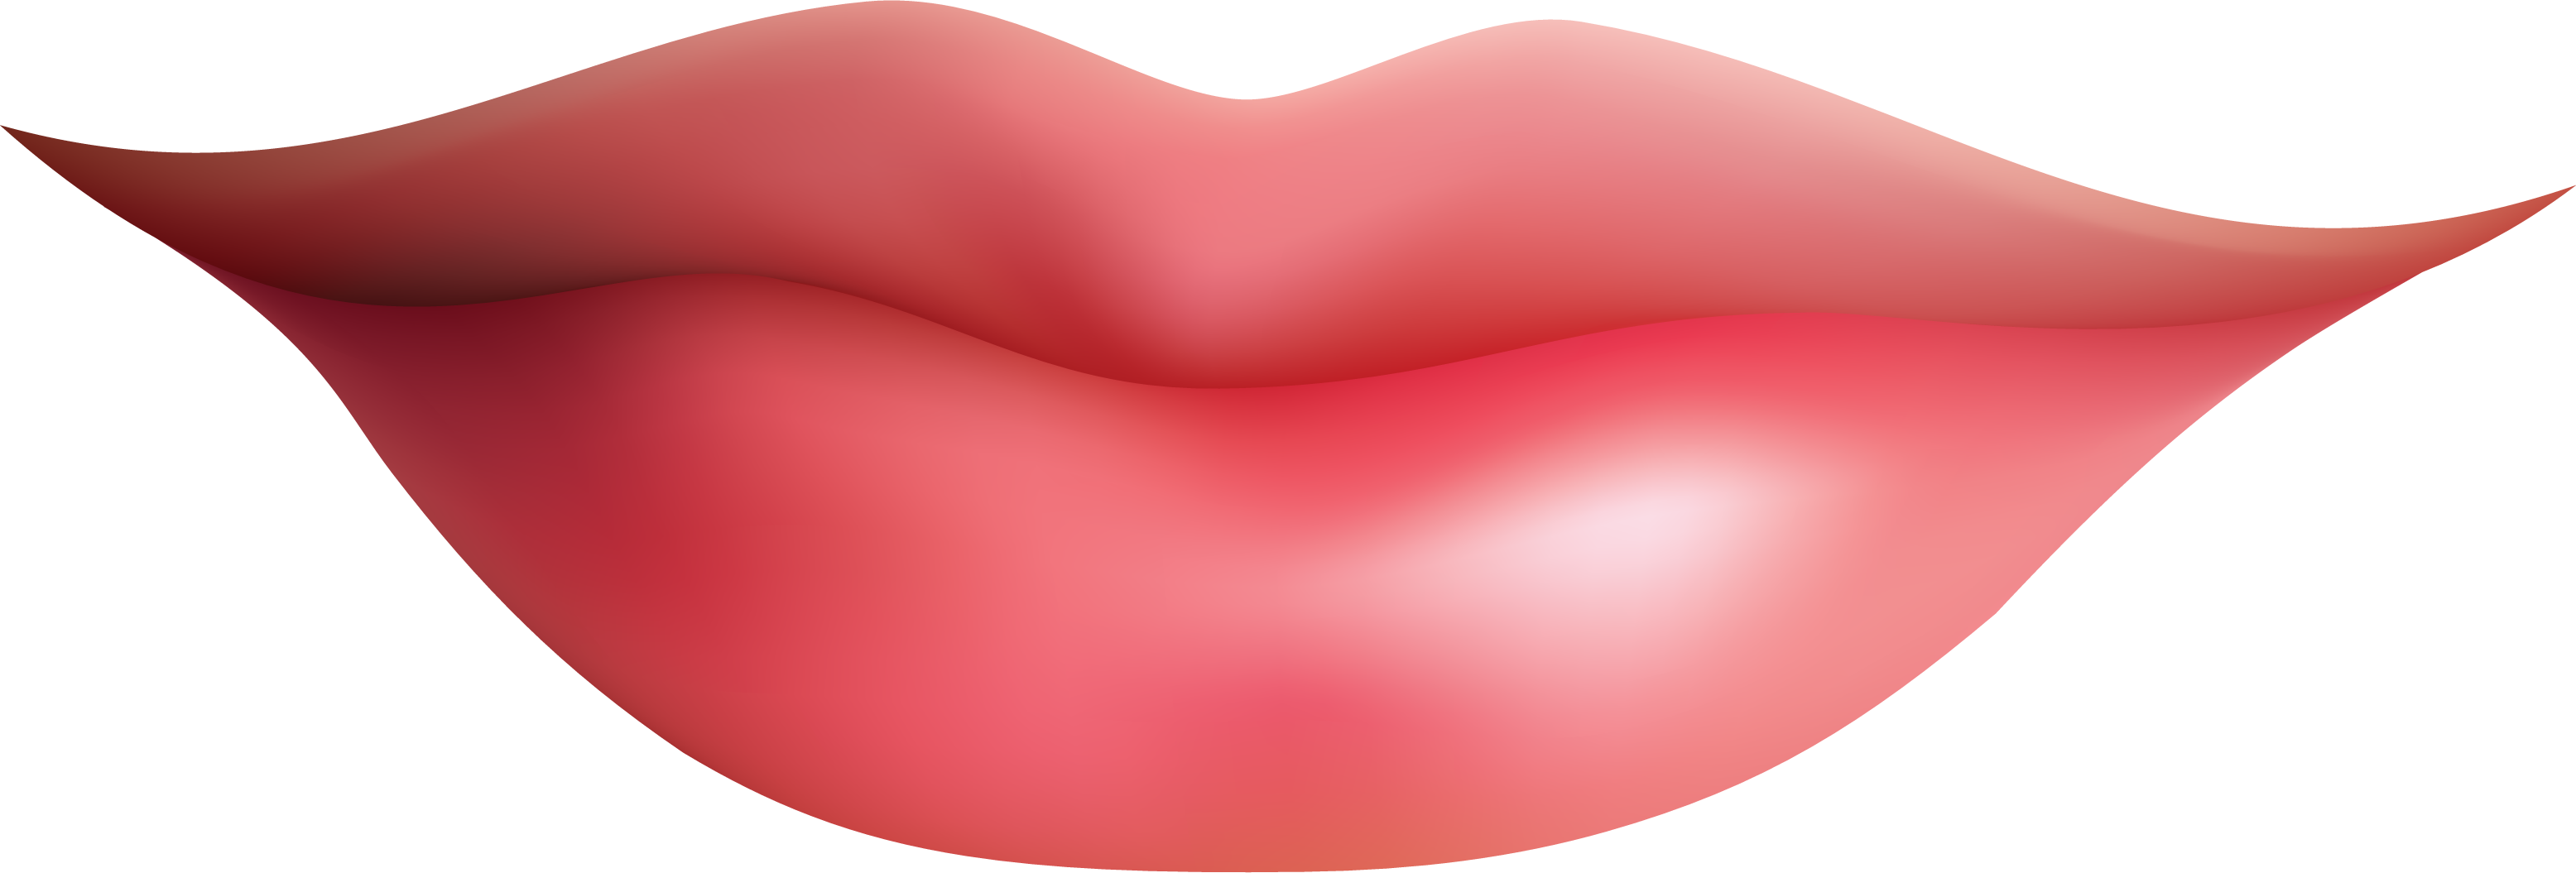 Smile Lips PNG - 45675